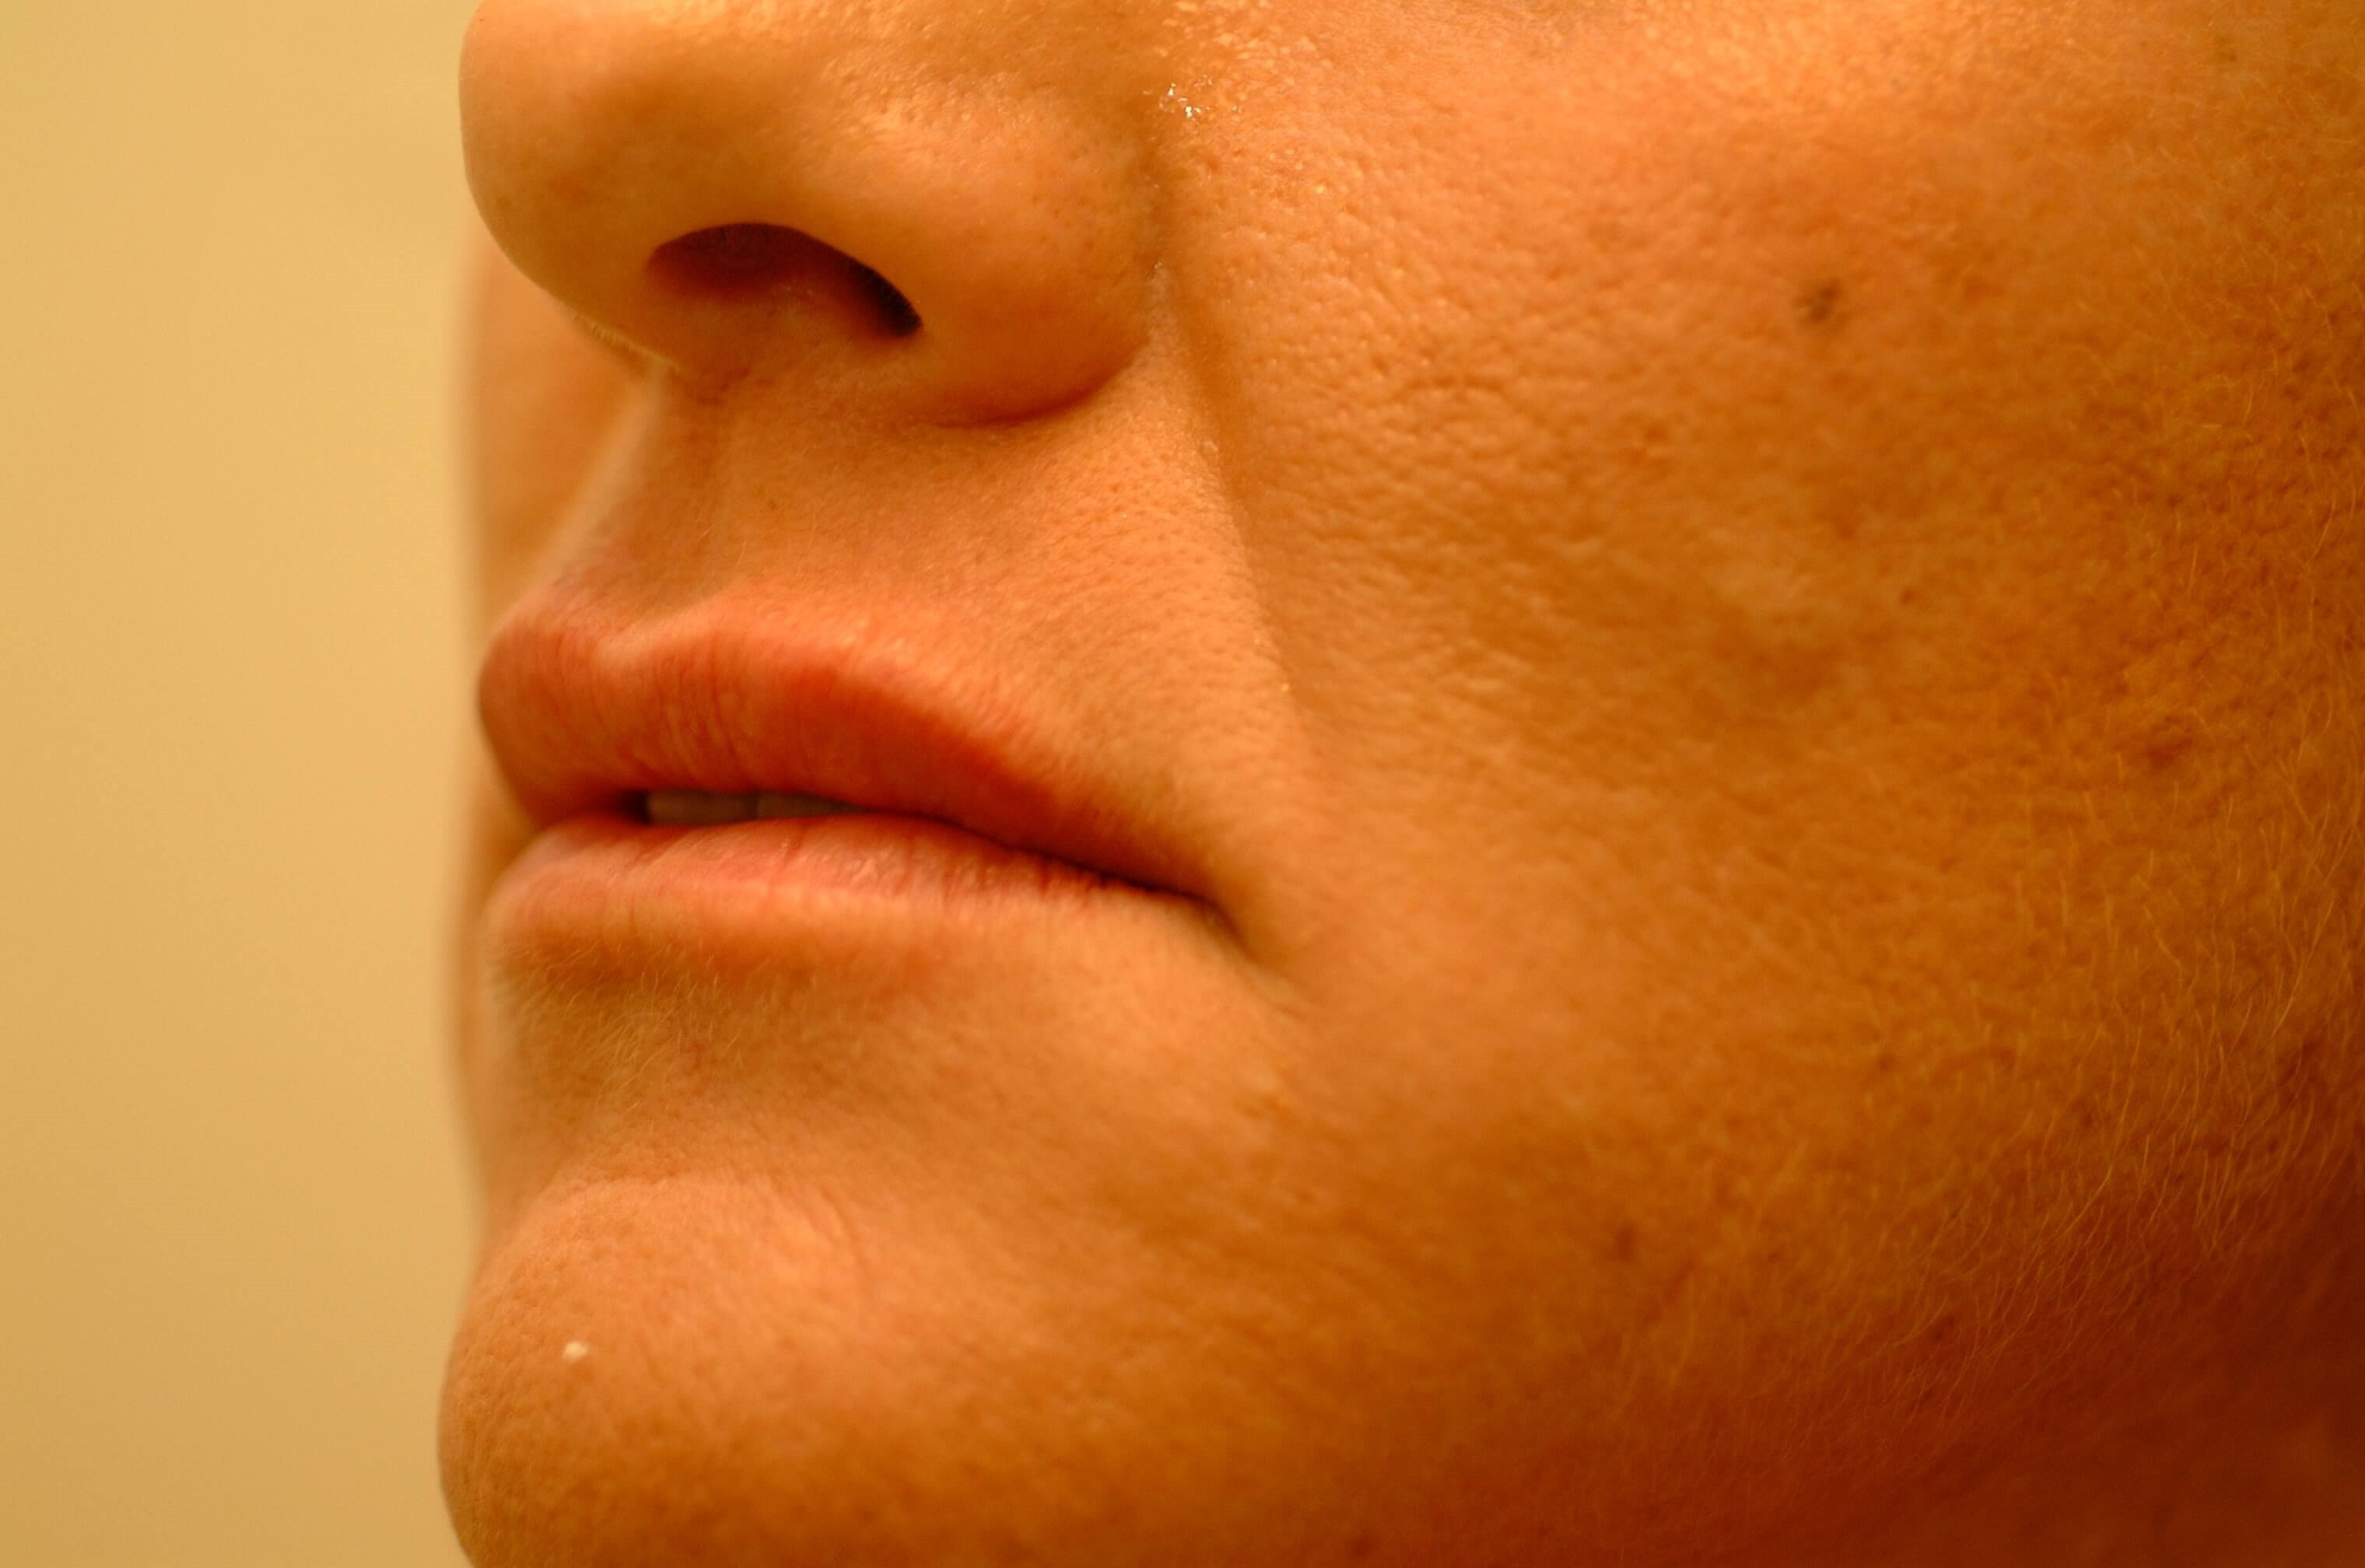 Newport Beach Filler/Botox Oblique View After